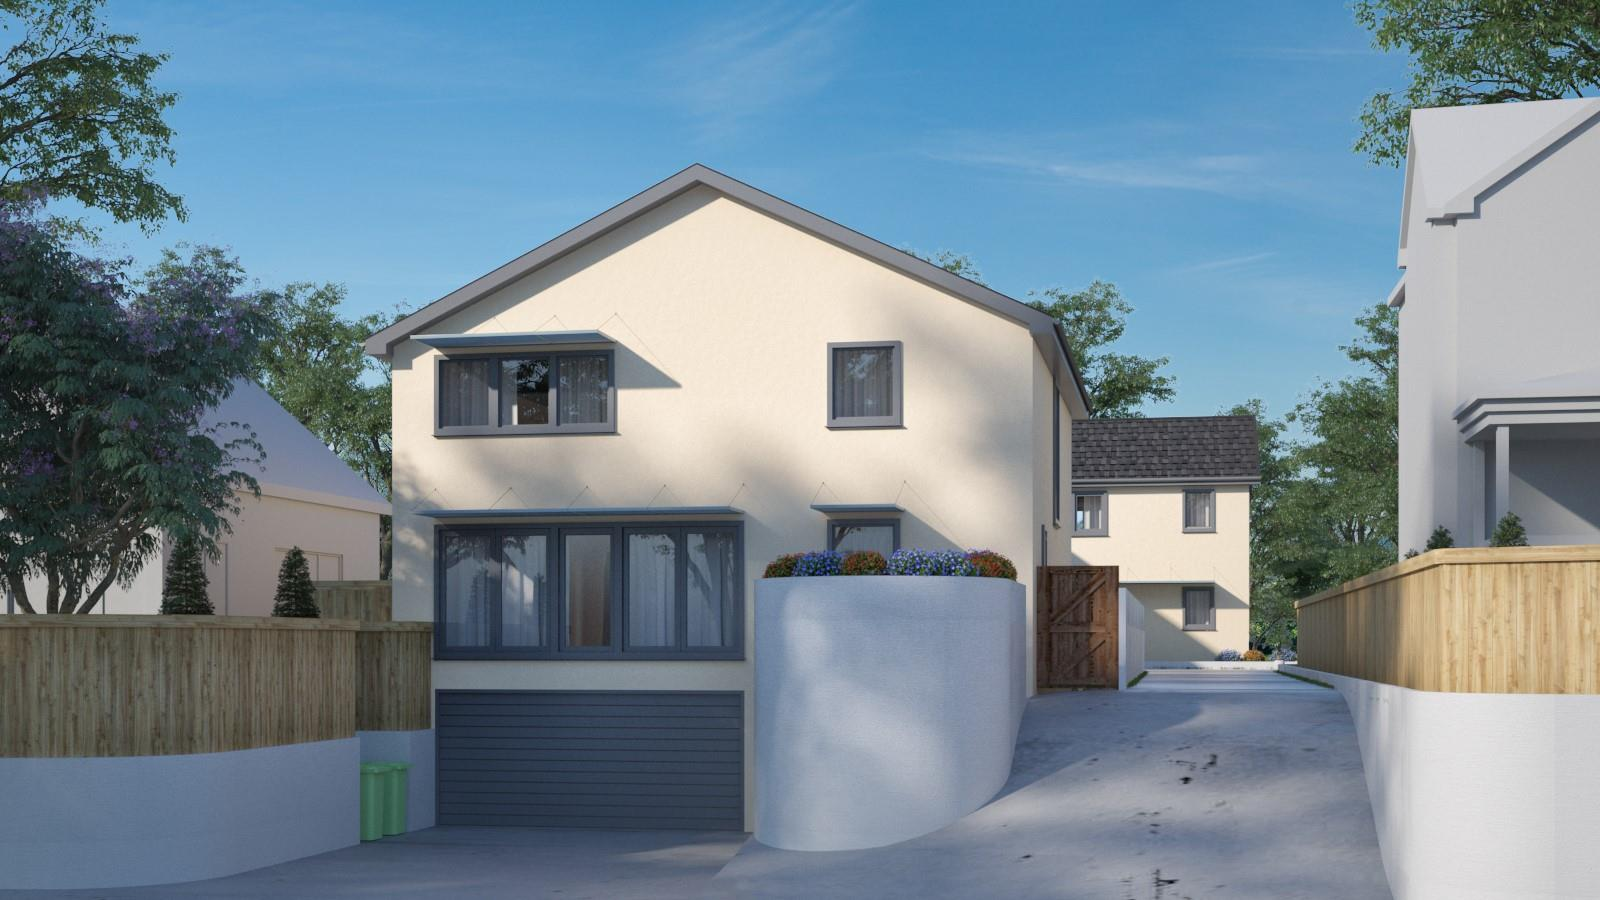 Huxnor Road, Kingskerswell, Newton Abbot